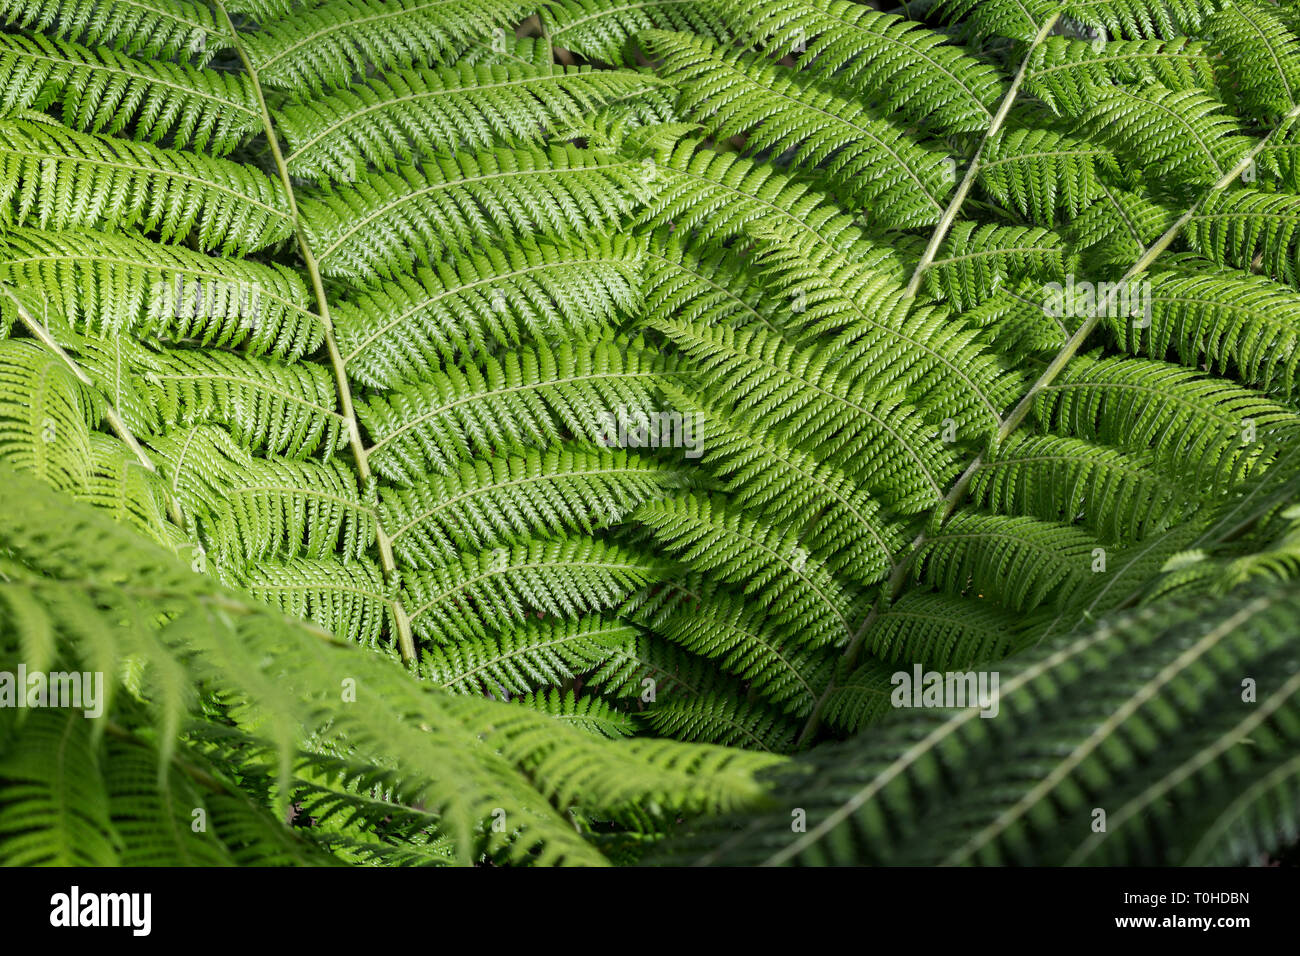 Close-up of fresh, lush and green ferns leaves on a sunny day, full frame natural background. Stock Photo